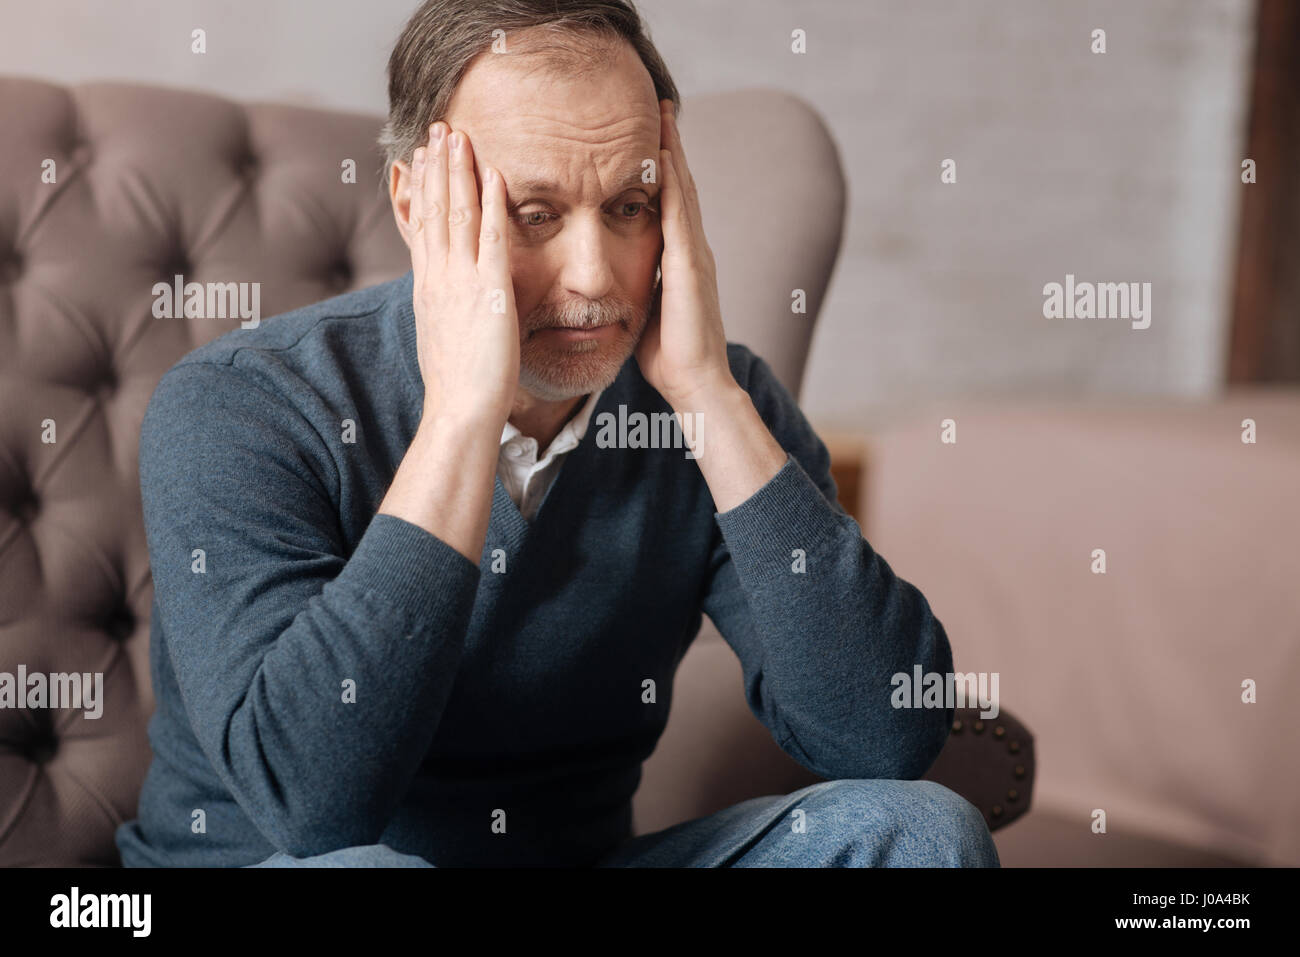 What is happened. Close up of frustrated senior man sitting on couch and touching his temples with hands. - Stock Image